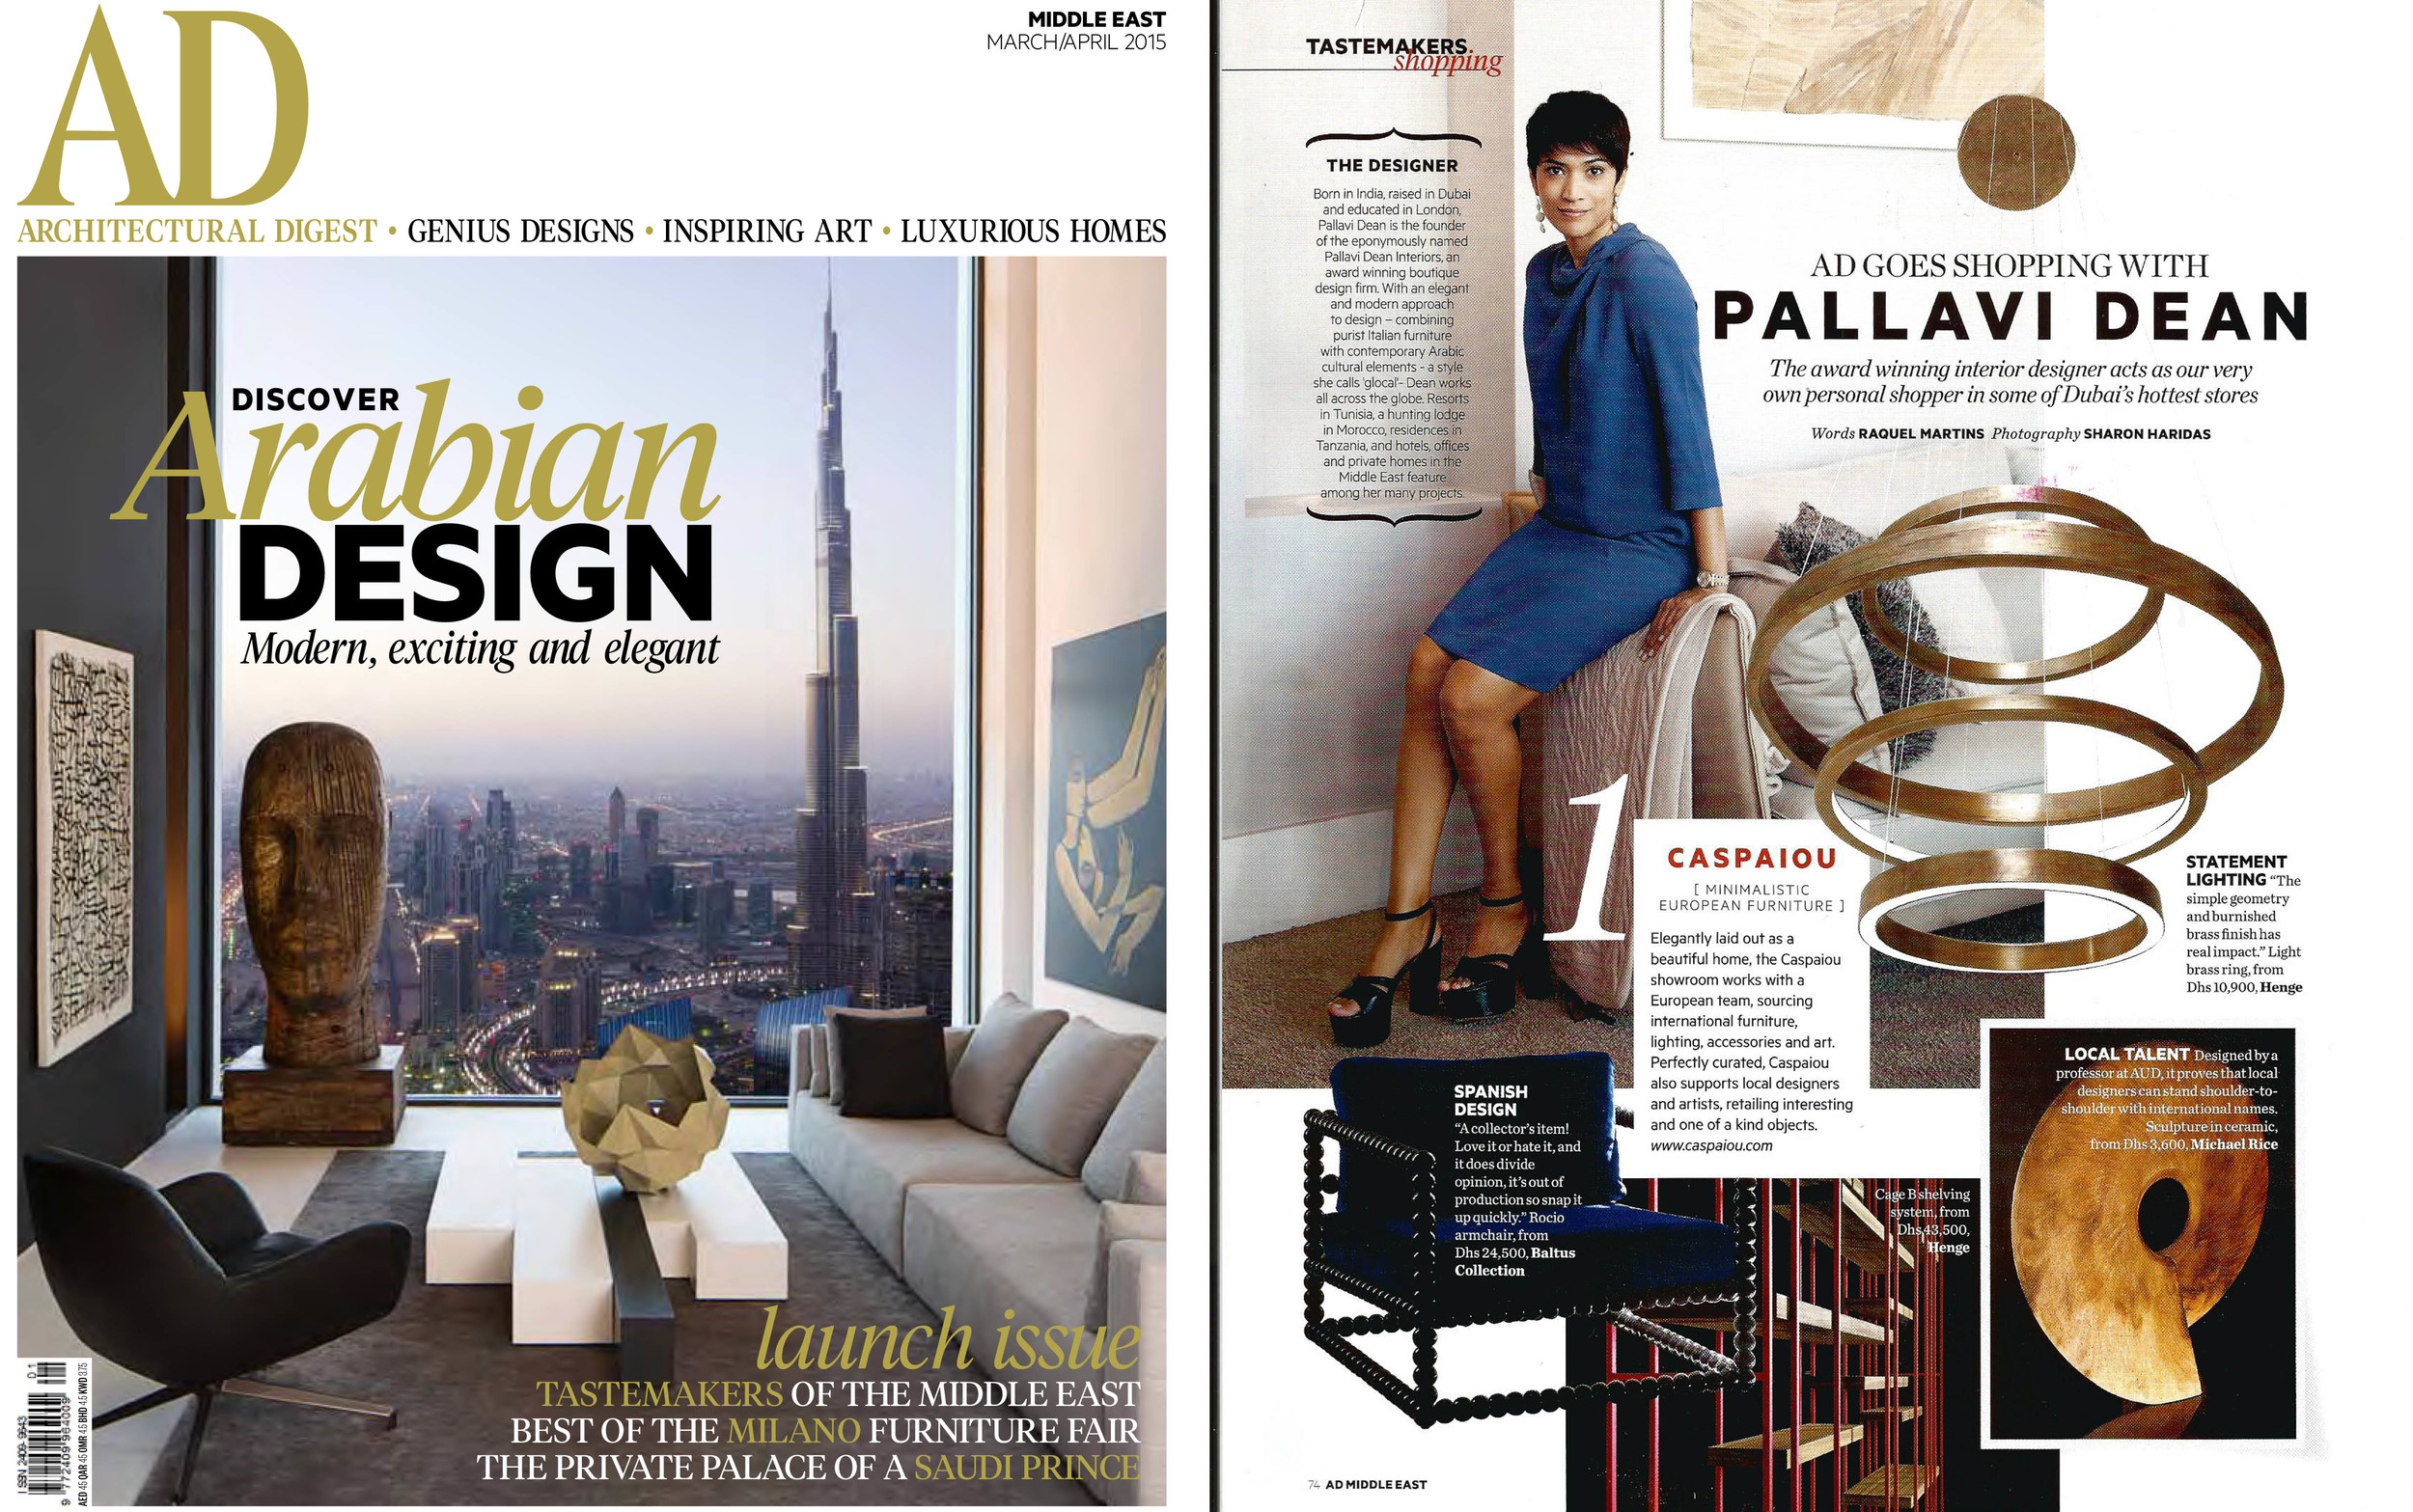 ArchitecturalDigest Middle East 1stEdition 2015